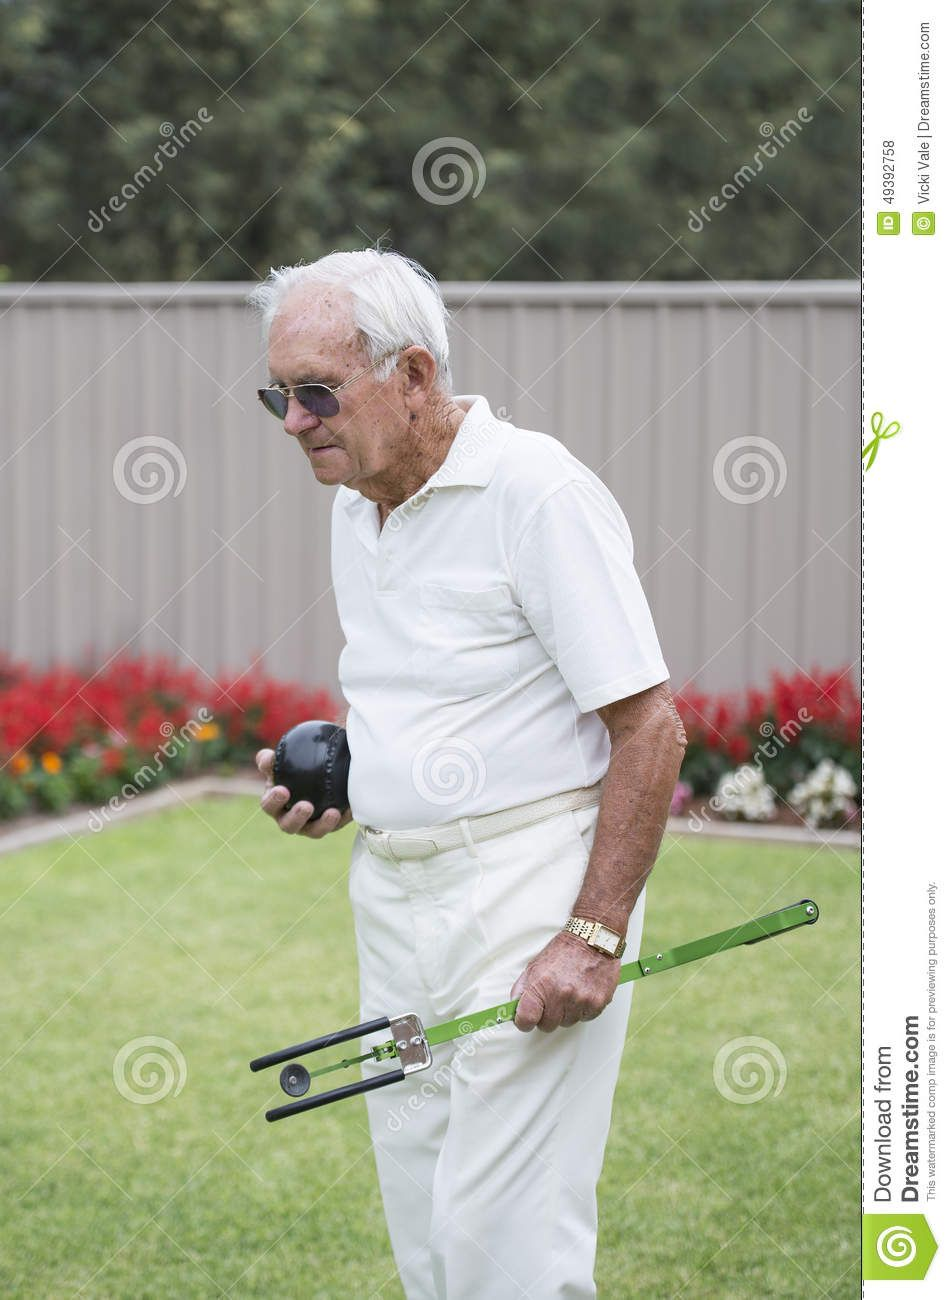 An elderly male bowler carrying a bowling ball and artificial bowling arm.